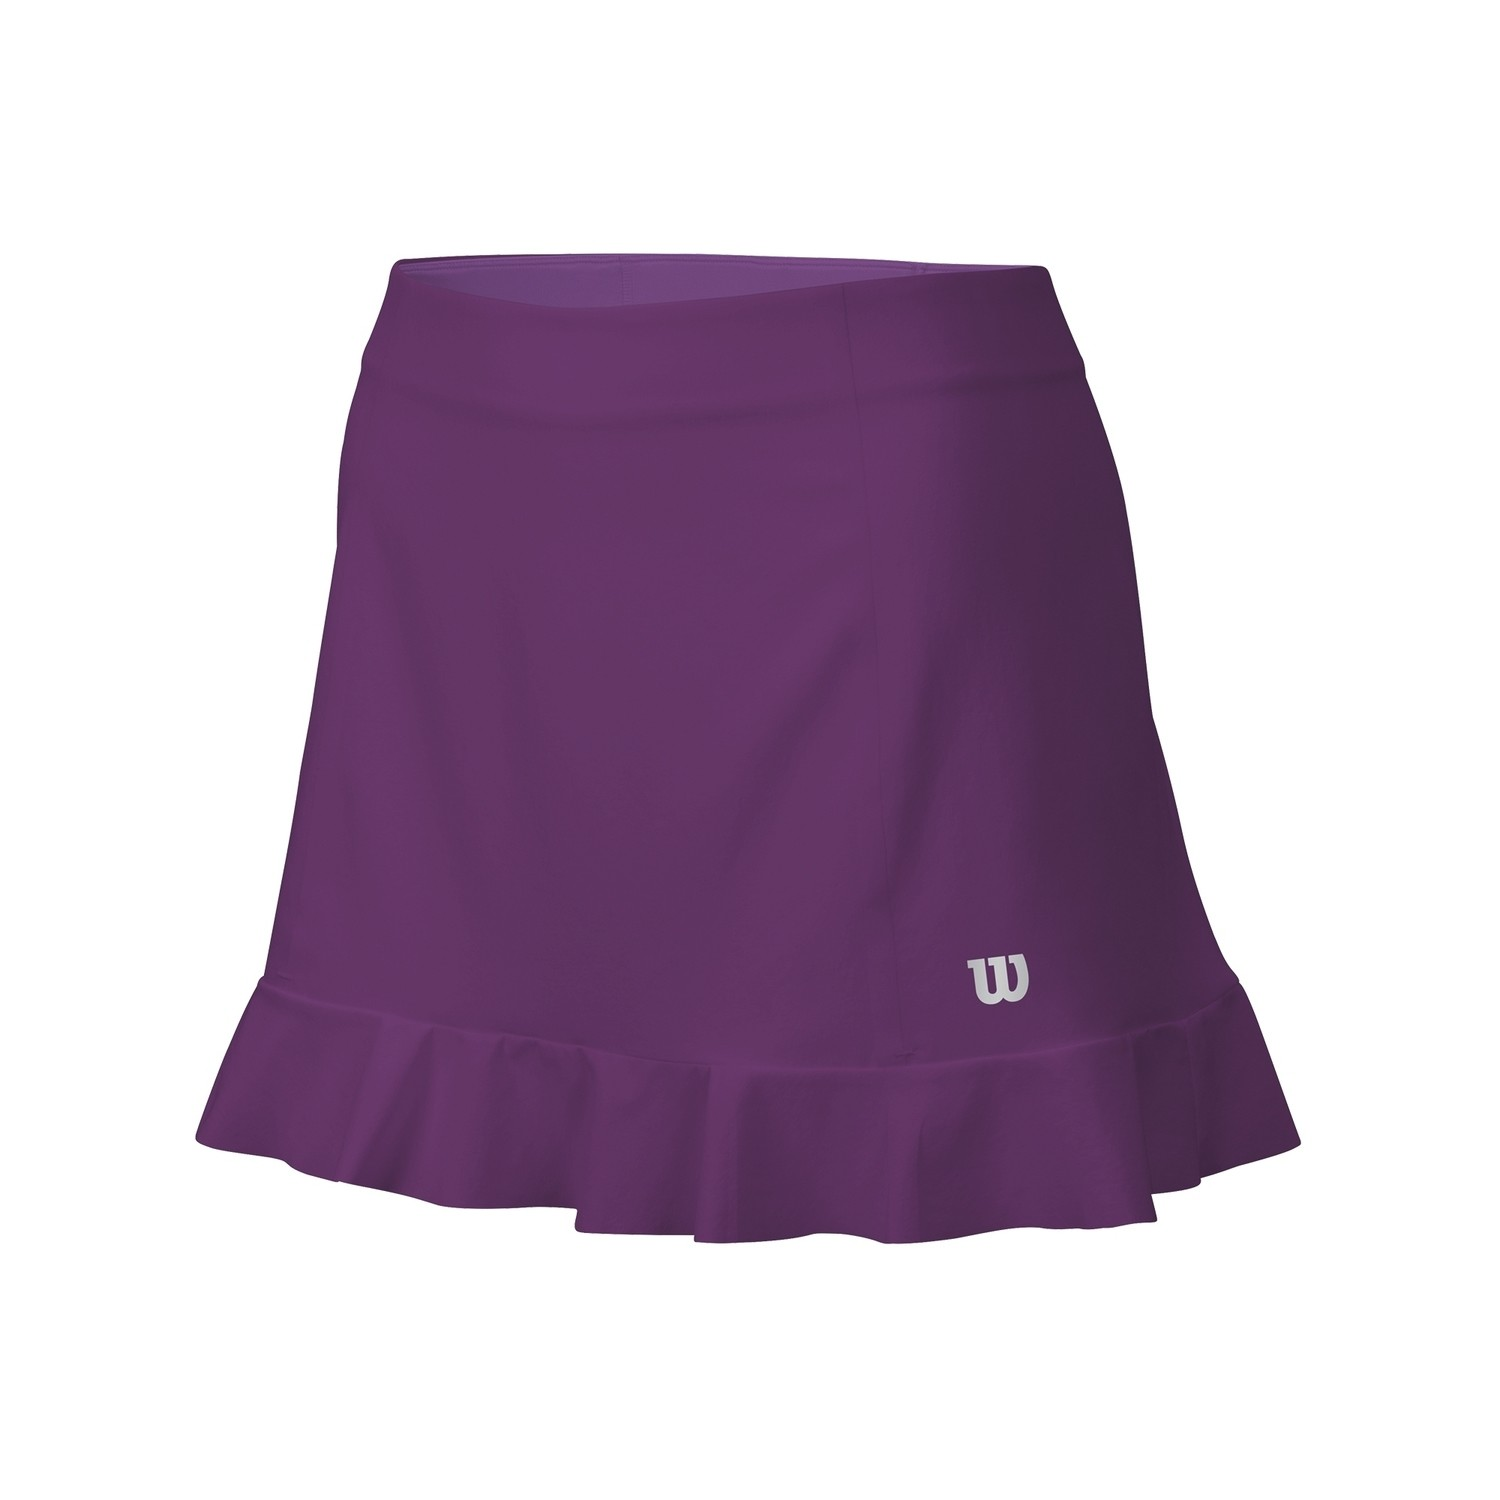 "Wilson Ruffle Stretch 12.5"" Skirt - Dark Plumberry"